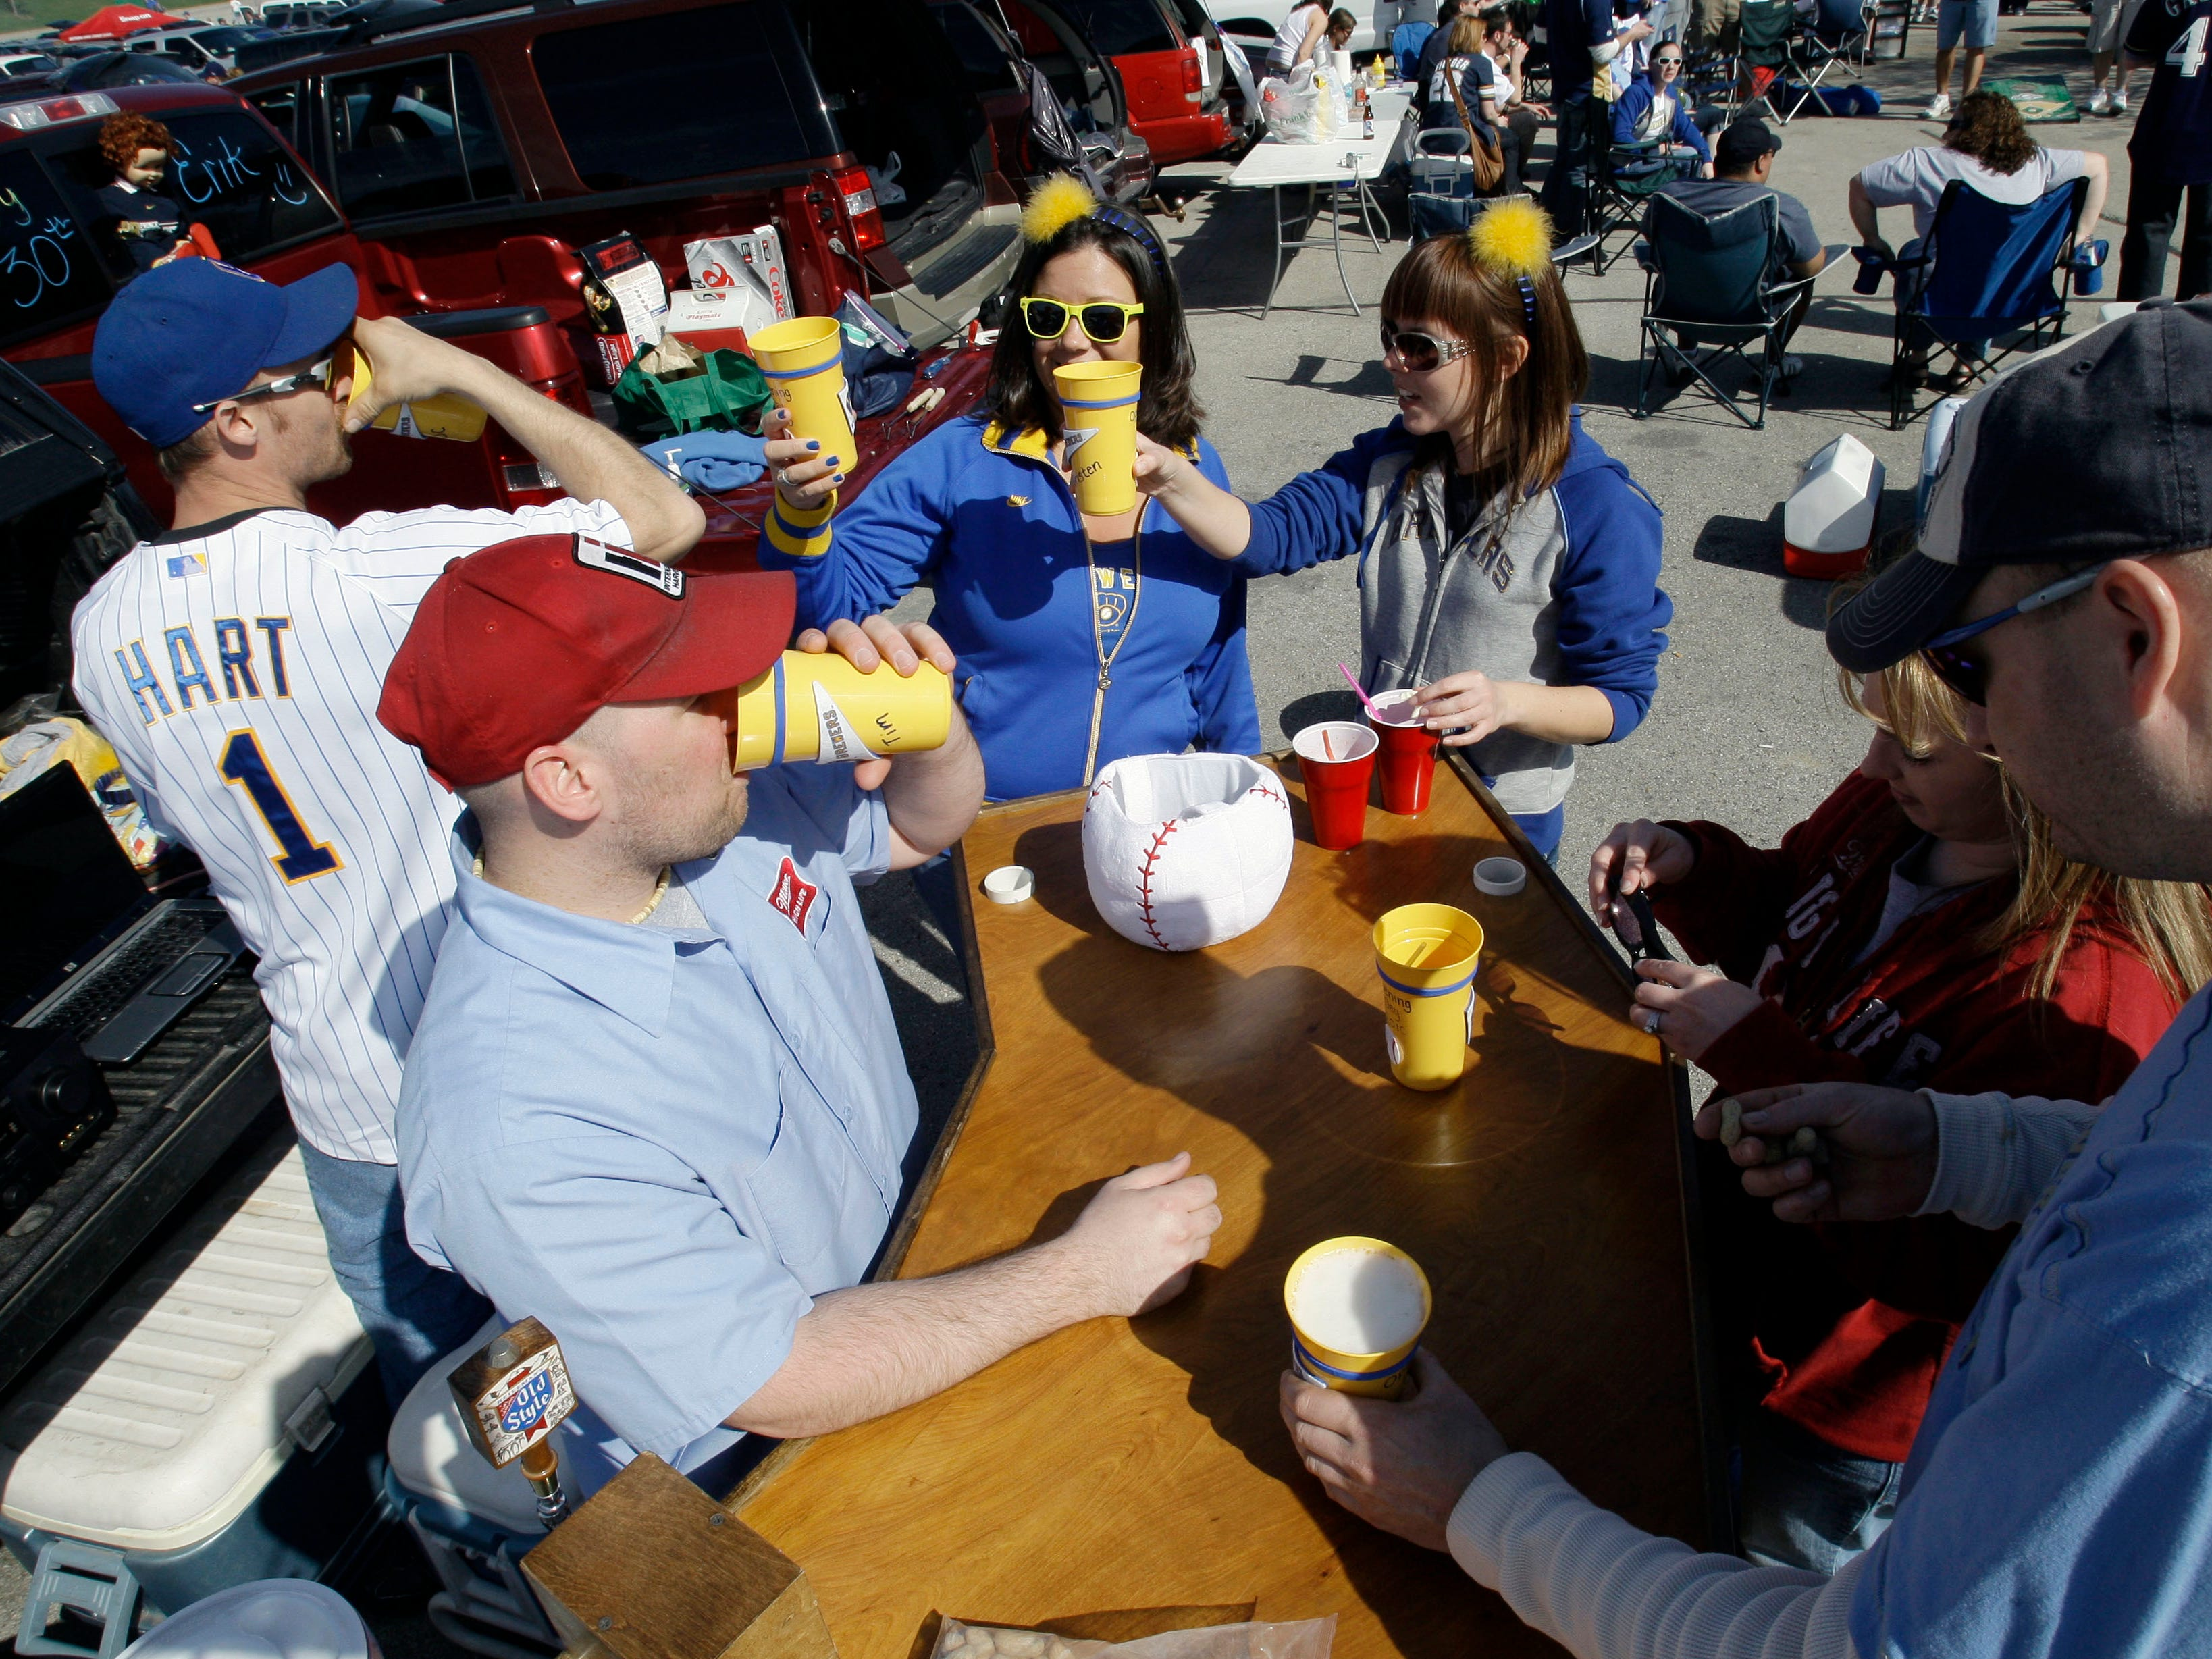 Tim Lucci (foreground left) entertain his friends with a homemade bar he brought for tailgating before the Milwaukee Brewers' home opener against the Colorado Rockies April 5, 2010, at Miller Park. Lucci, who has been coming to opening day fine nine years, was expecting about 30 people for his party. The Brewers lost to the Rockies, 5-3.